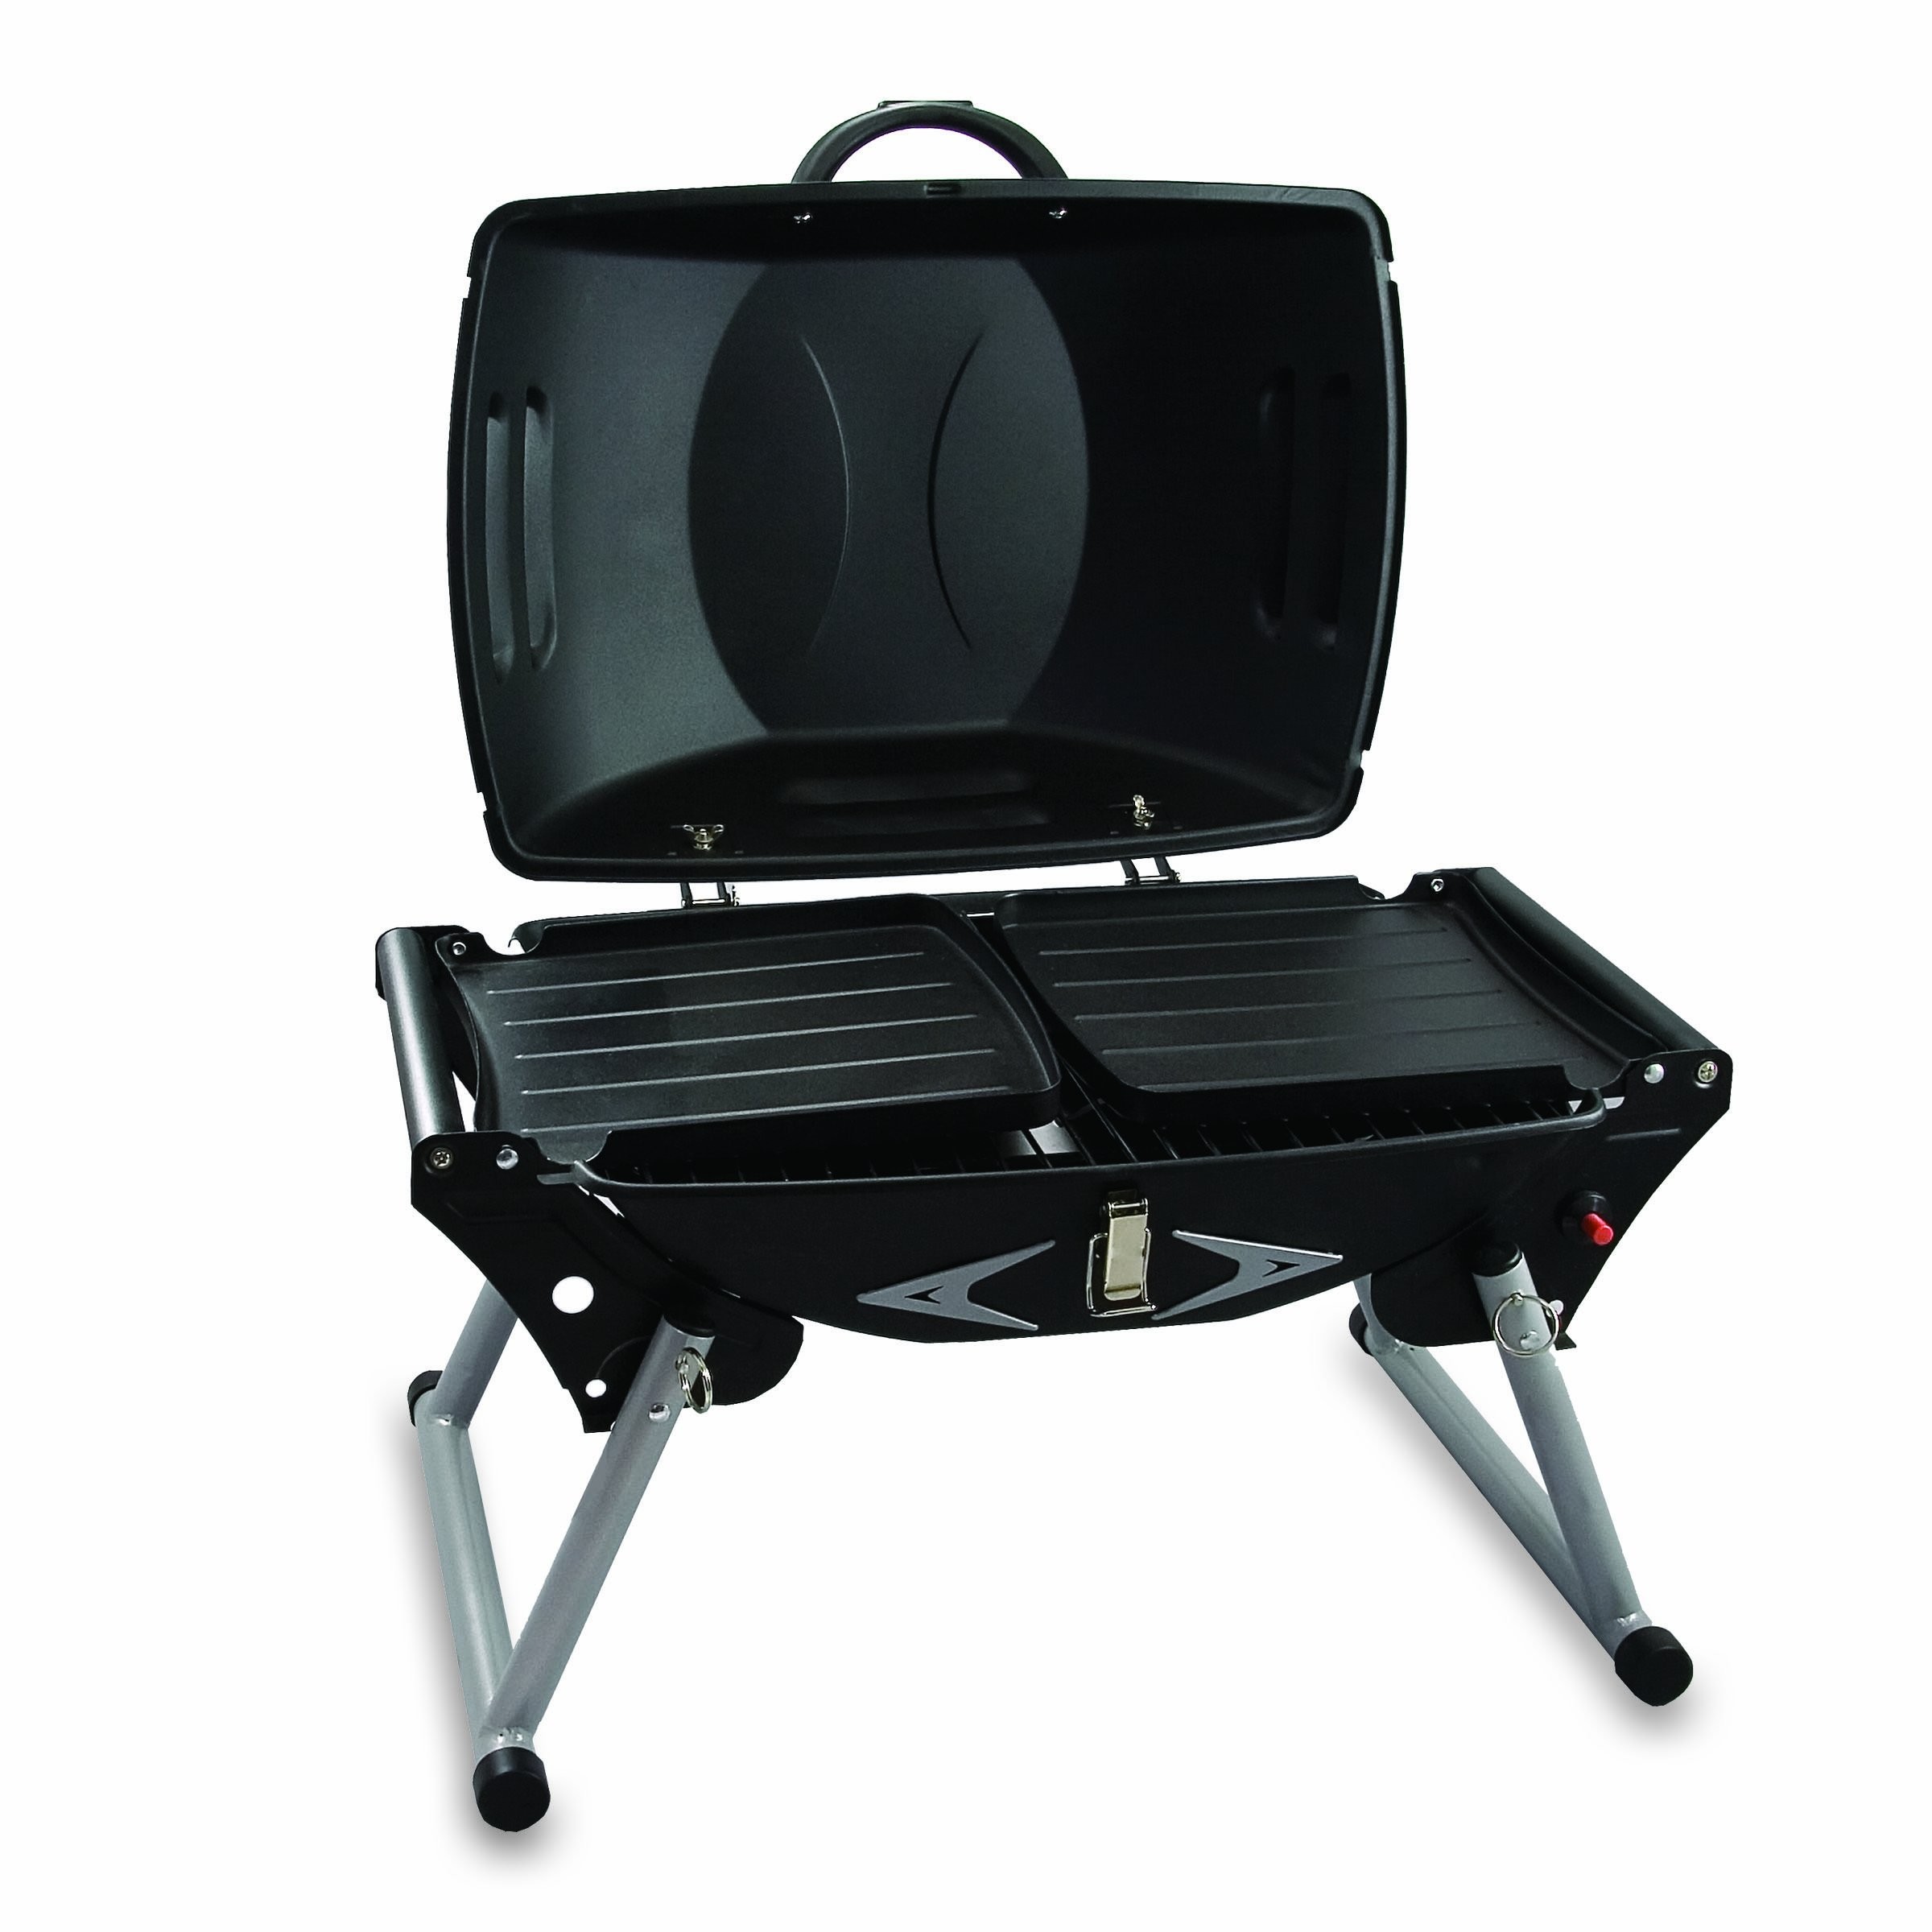 Picnic Time Portagrillo Portable Propane BBQ Grill by ONIVA - a Picnic Time brand (Image #2)